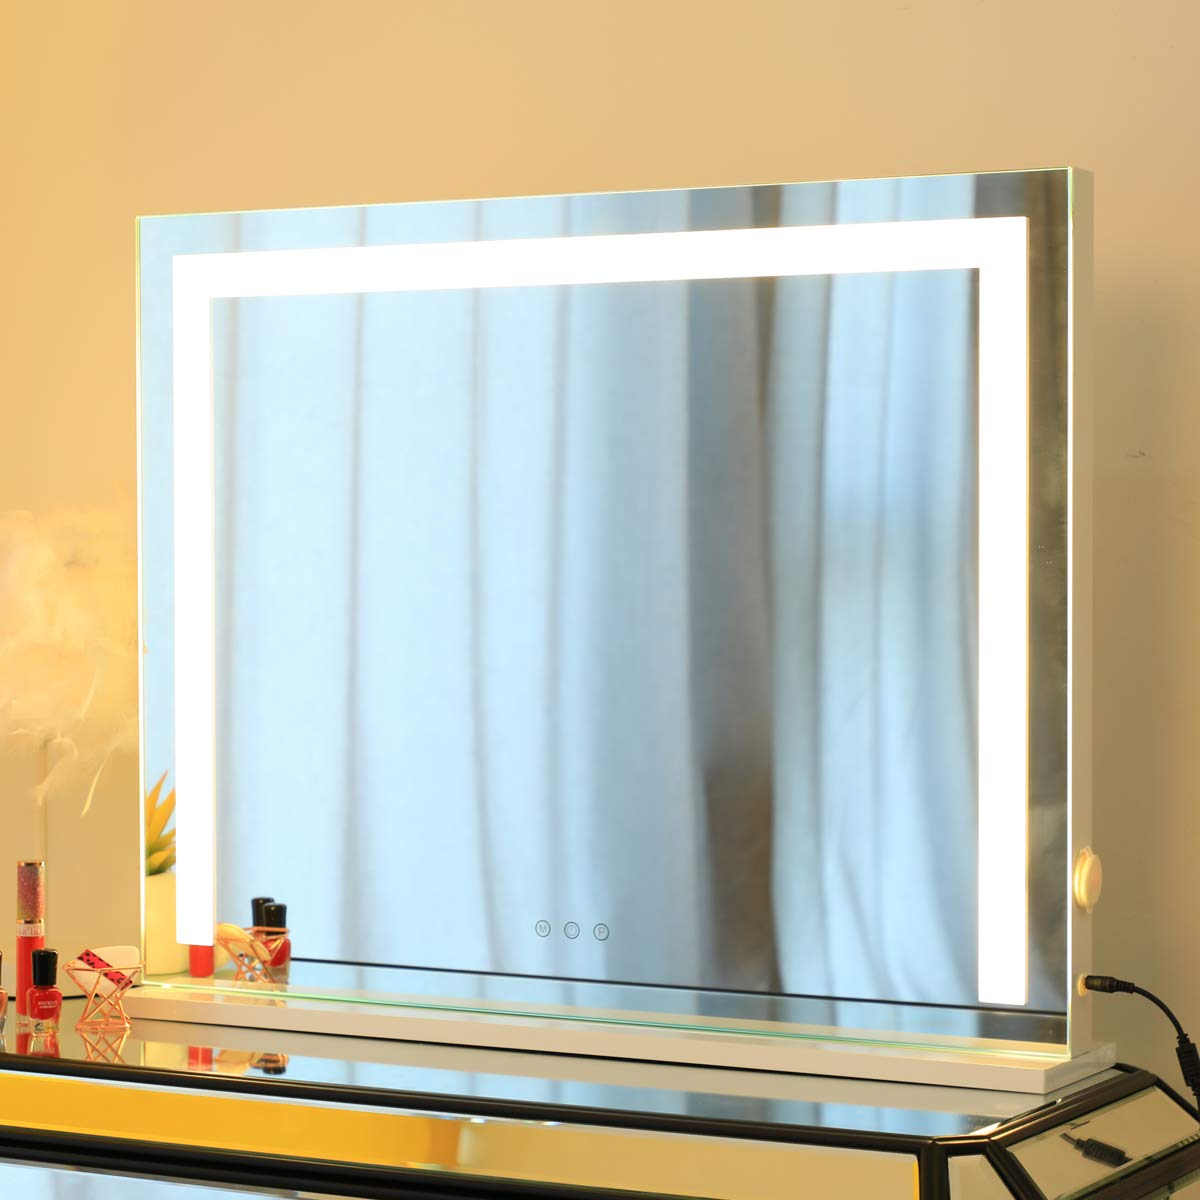 HOMPEN Makeup Mirror with Lights, Lighted Vanity Mirror, Table Top Lighted Beauty Mirror